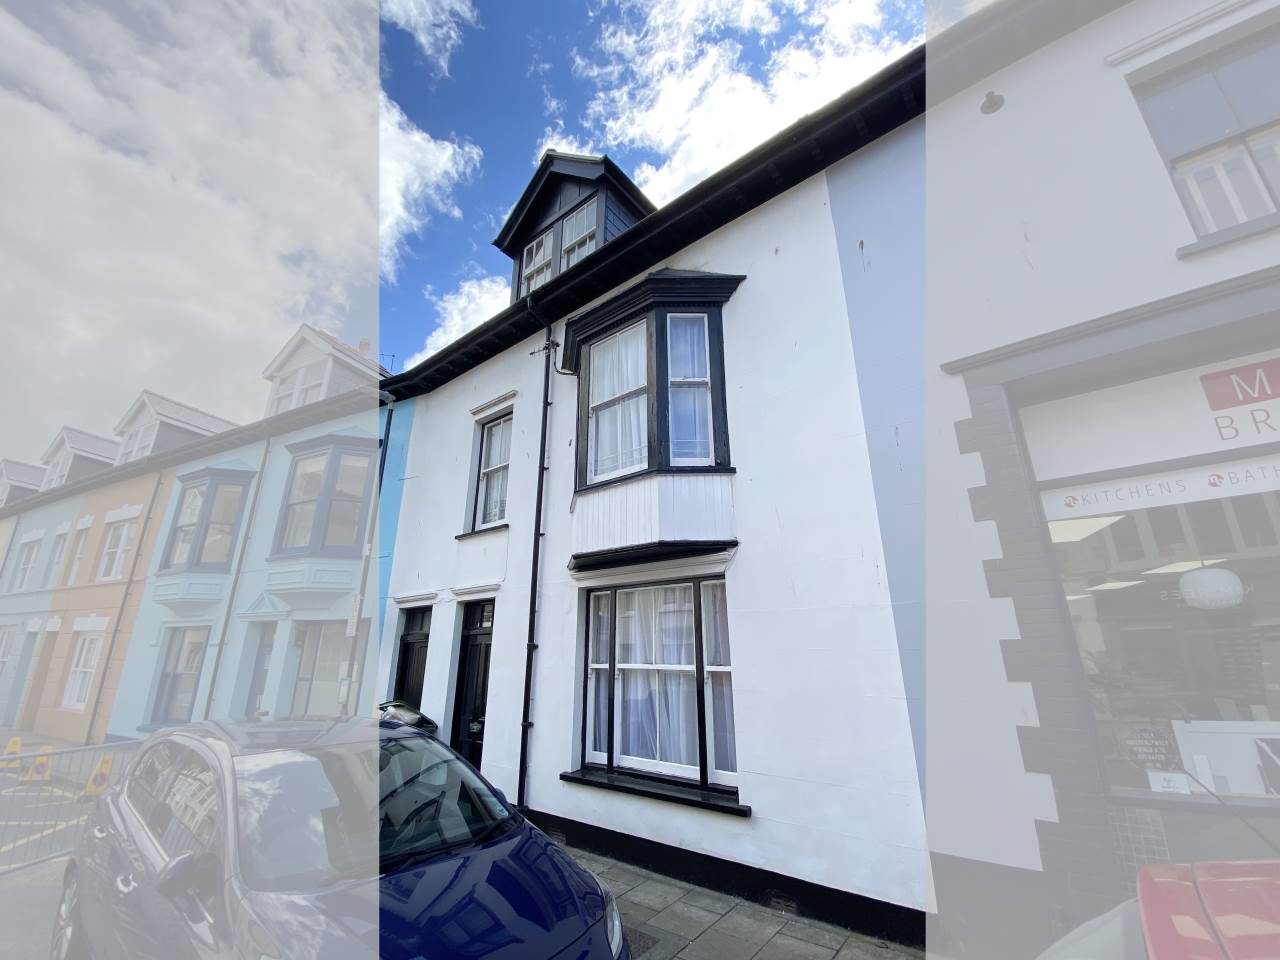 5 bed house to rent in Aberystwyth, Ceredigion - Property Image 1